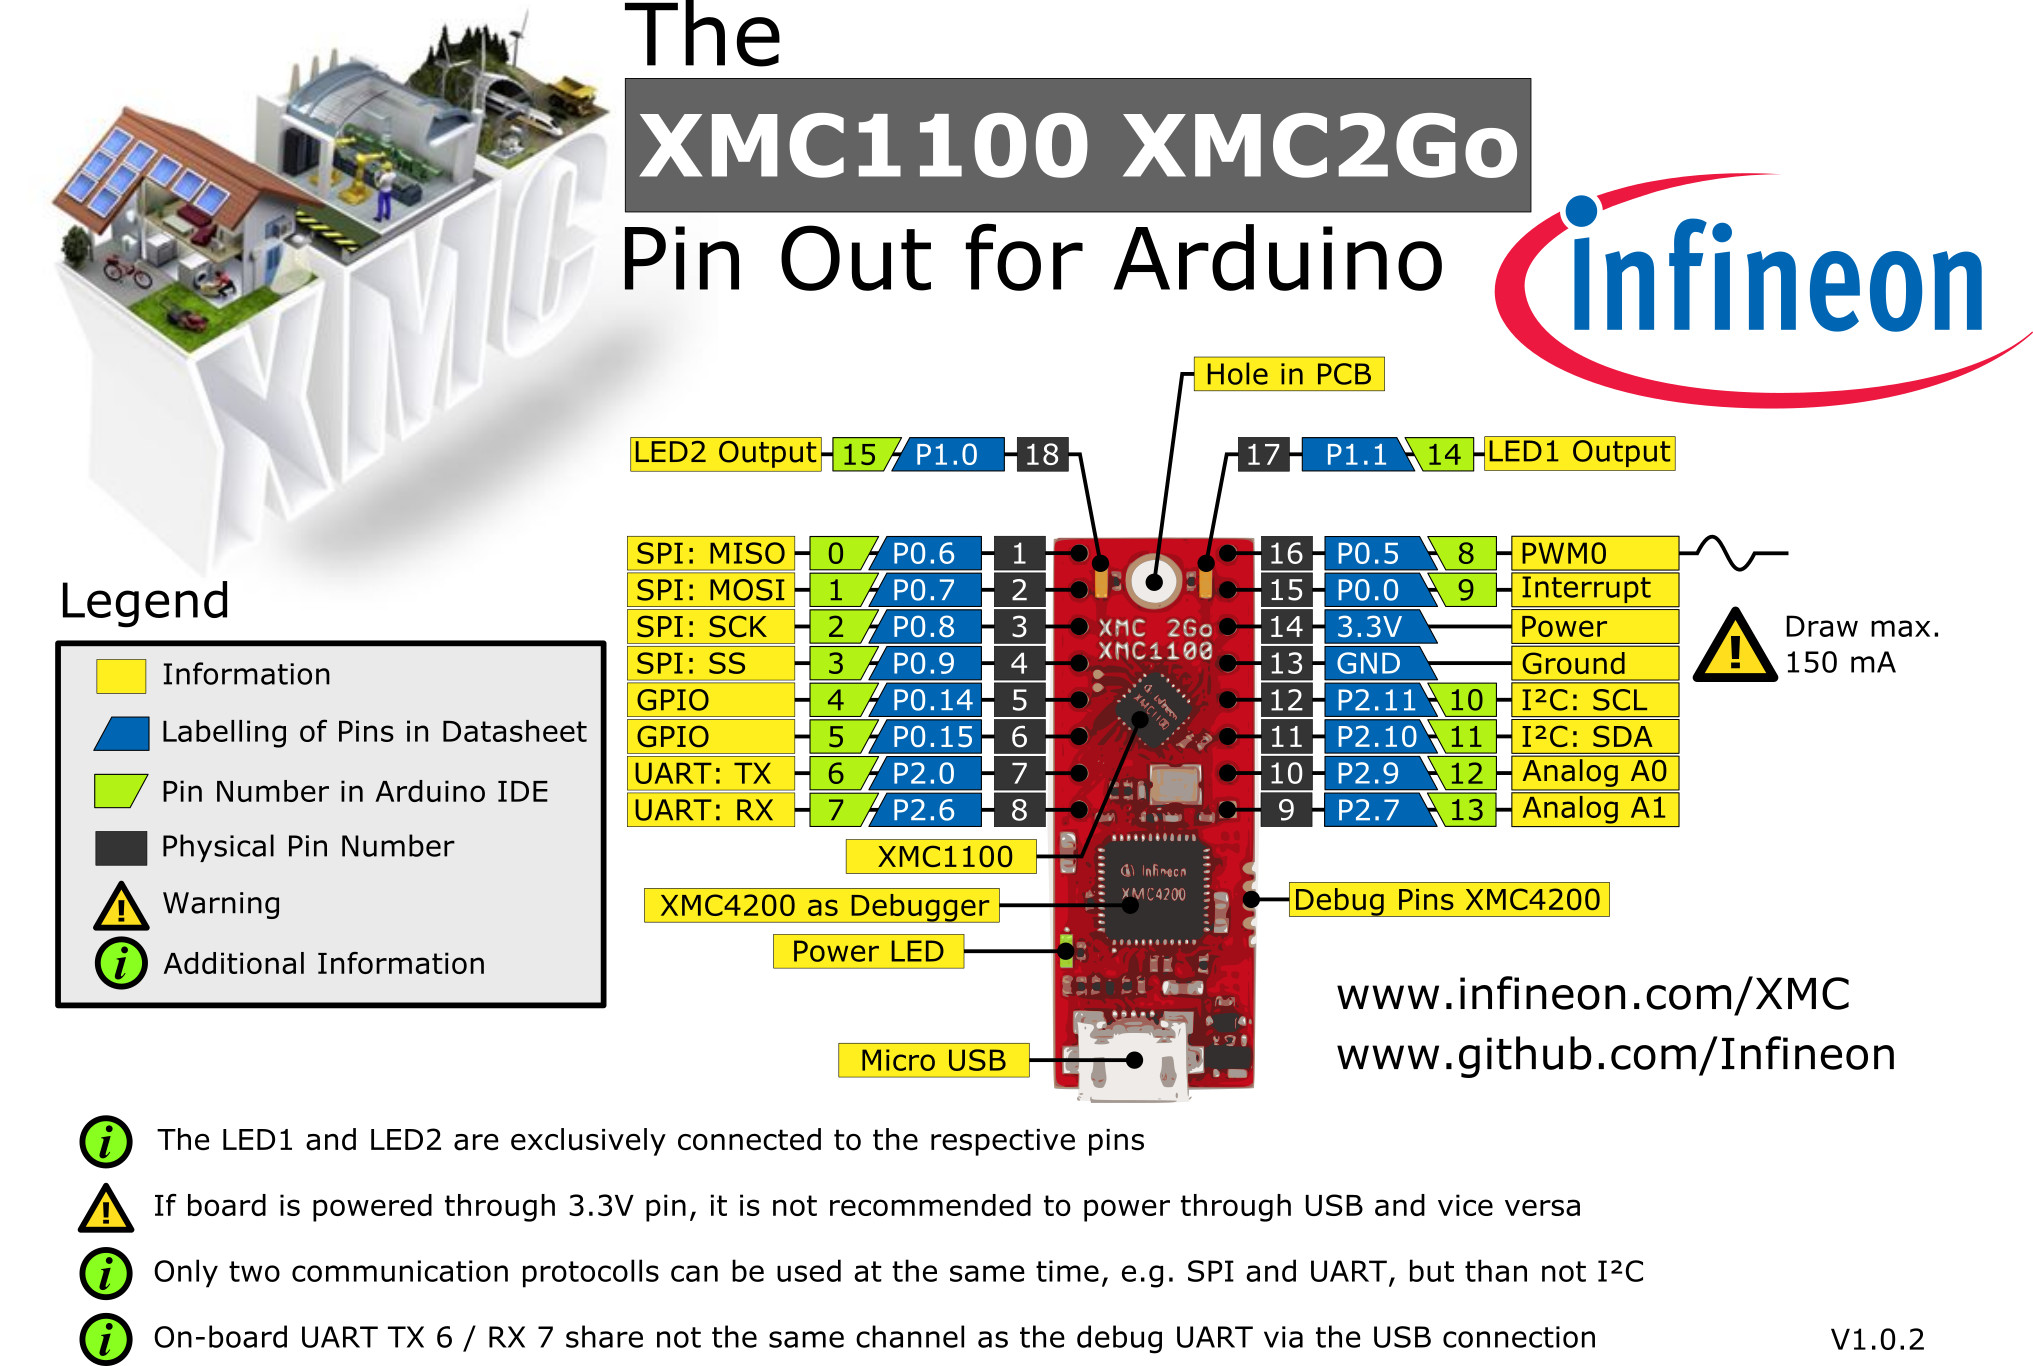 Tx and Rx pin for UART in XMC 2GO · Issue #23 · Infineon/XMC